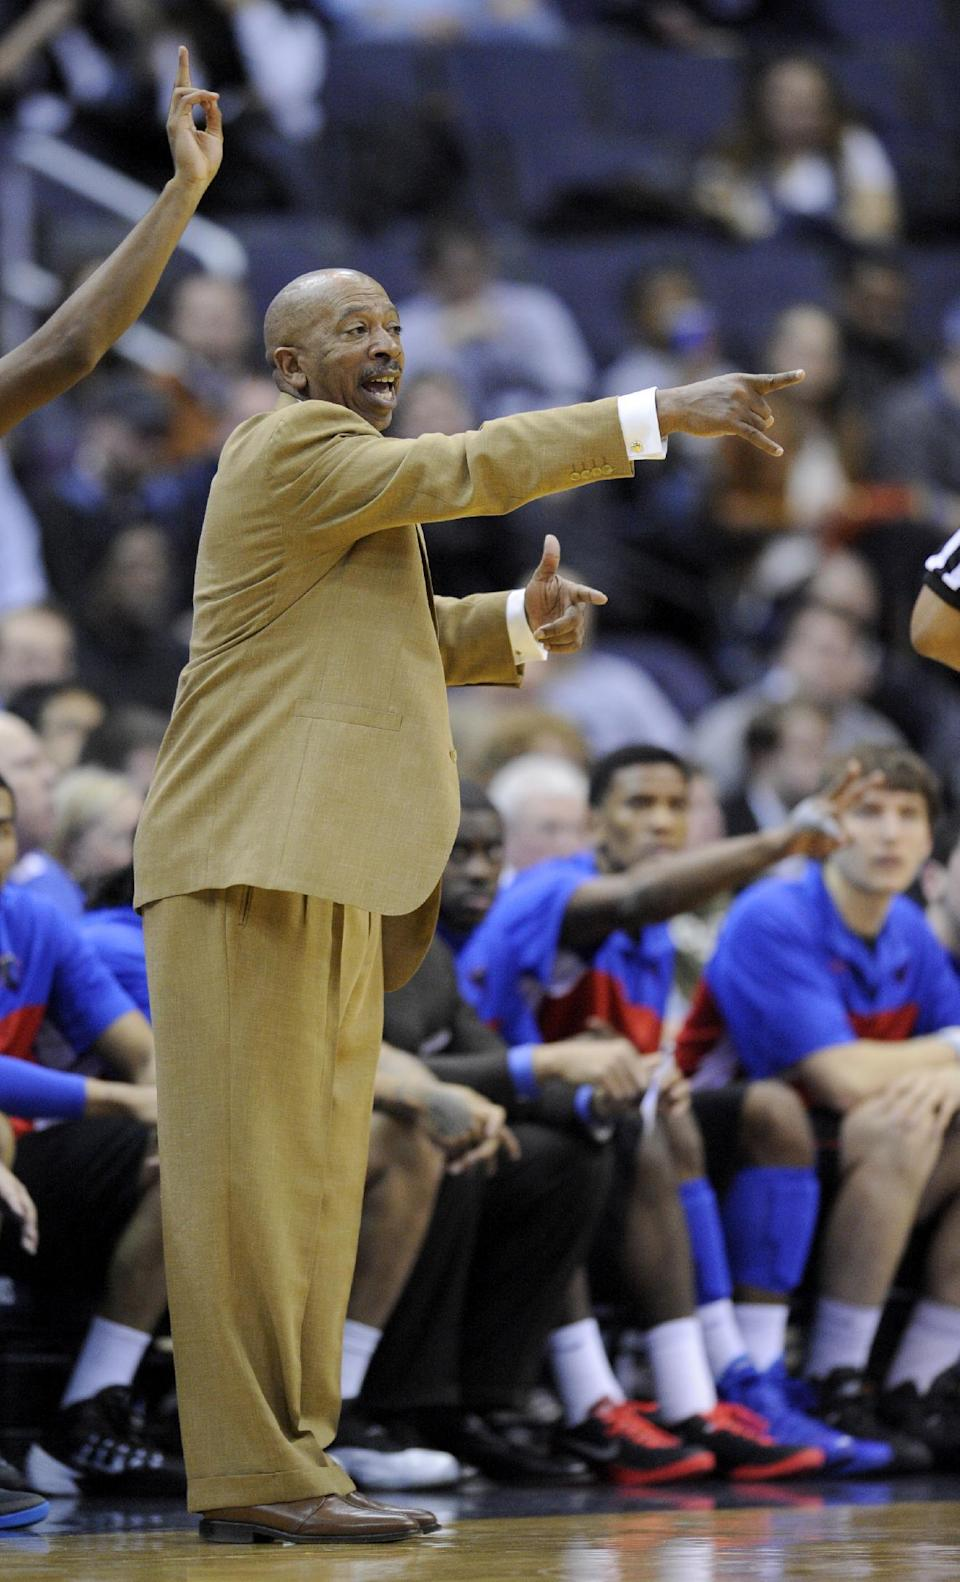 DePaul coach Oliver Purnell gestures during the second half of an NCAA college basketball game against Georgetown, Tuesday, Dec. 31, 2013, in Washington. Georgetown won 61-54. (AP Photo/Nick Wass)